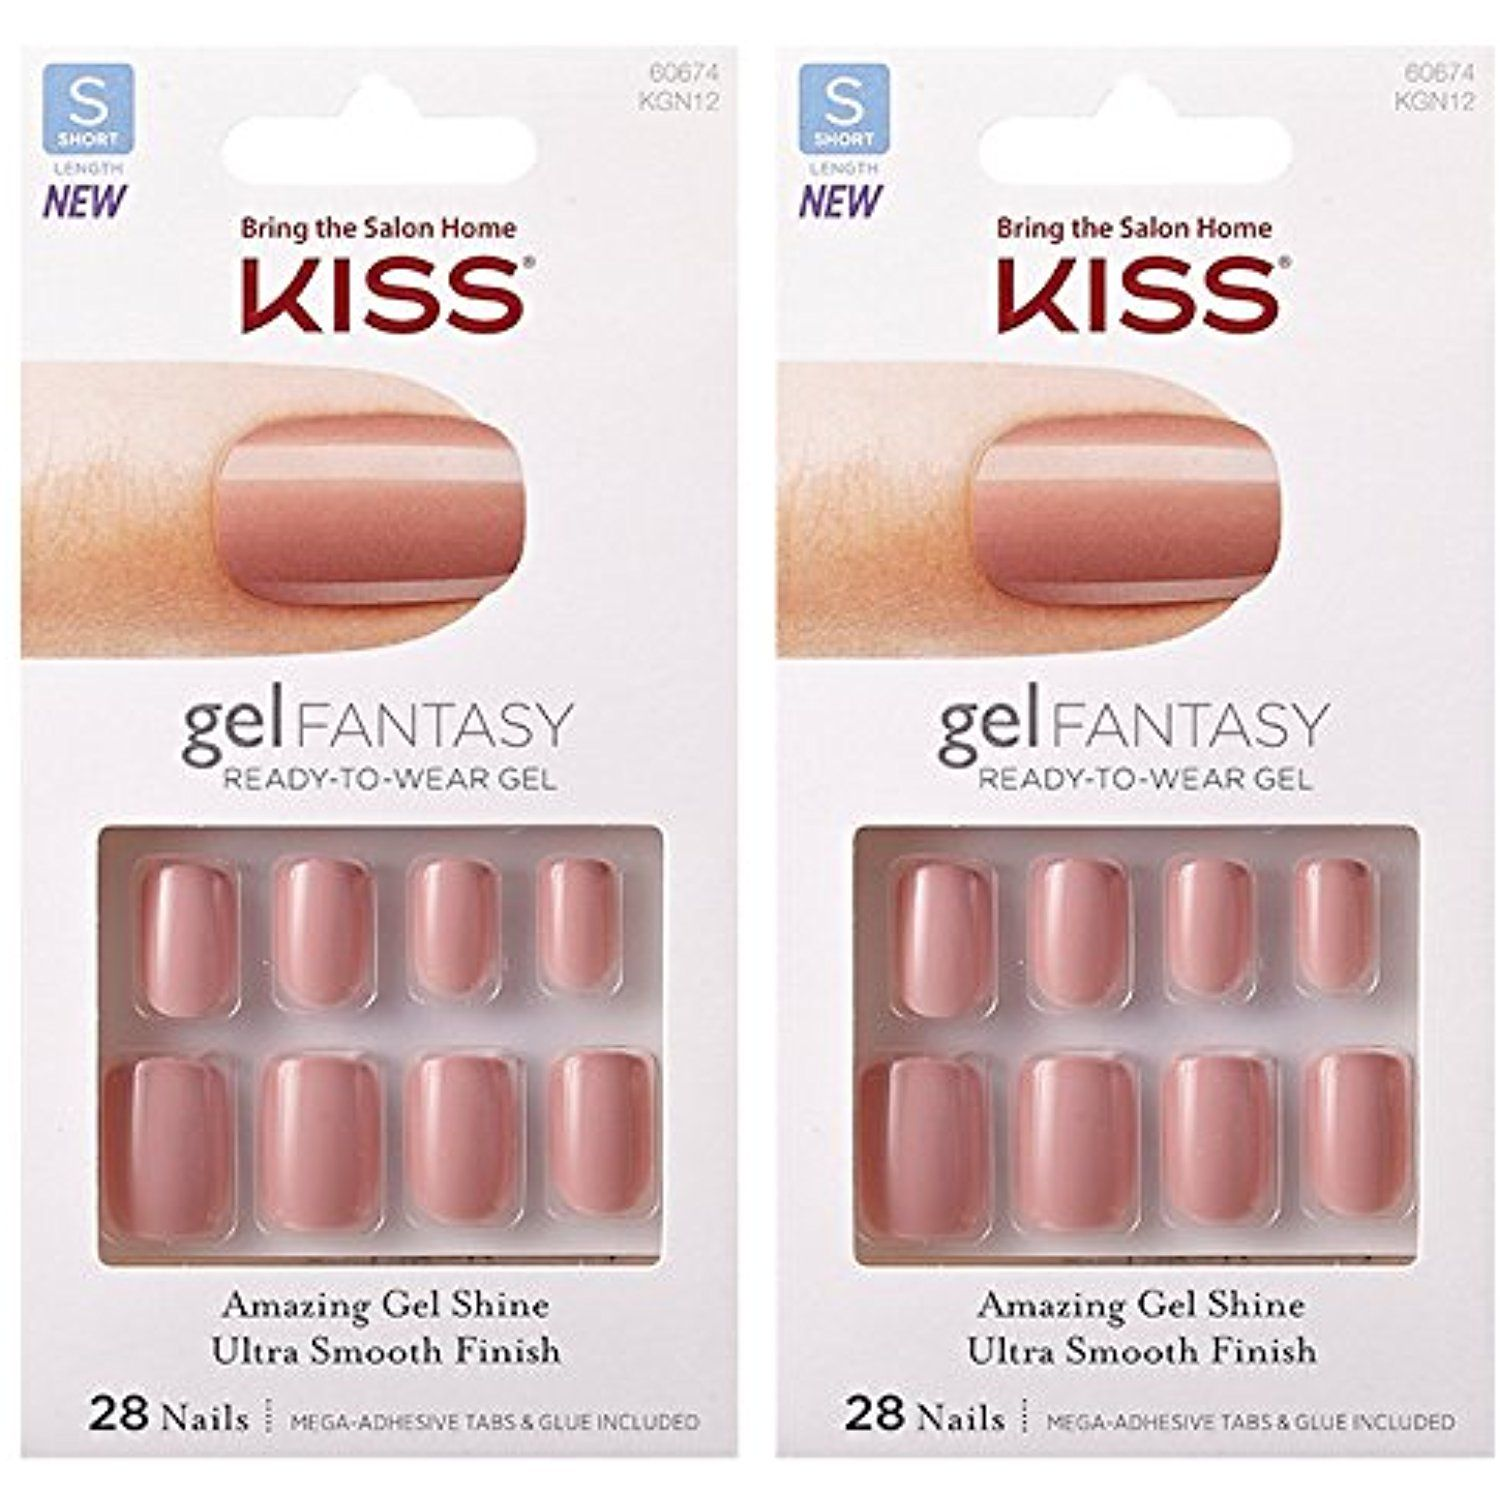 2-PACK Kiss GEL FANTASY \